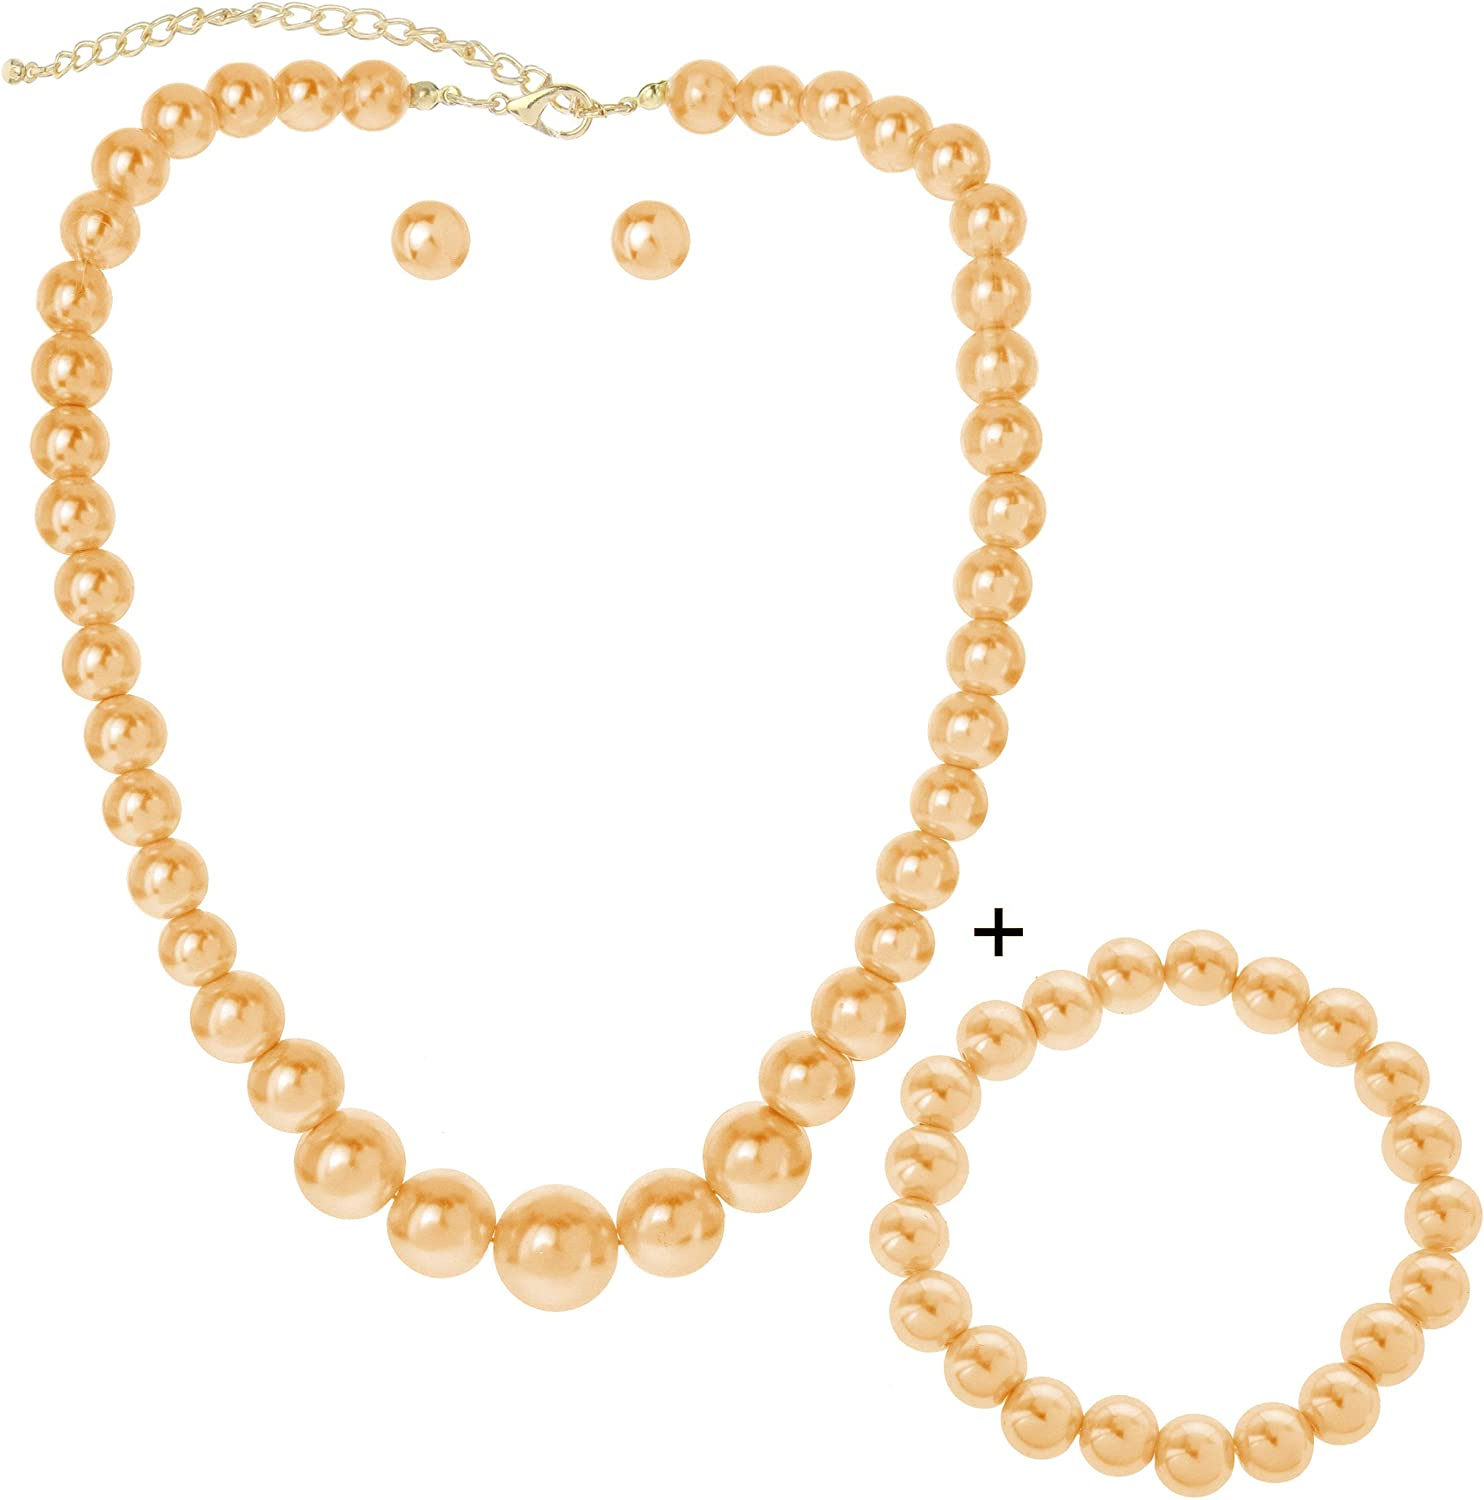 SP Sophia Collection Simulated Multi Sized Pearl Drop Choker Necklace Earring Bracelet Jewelry Set